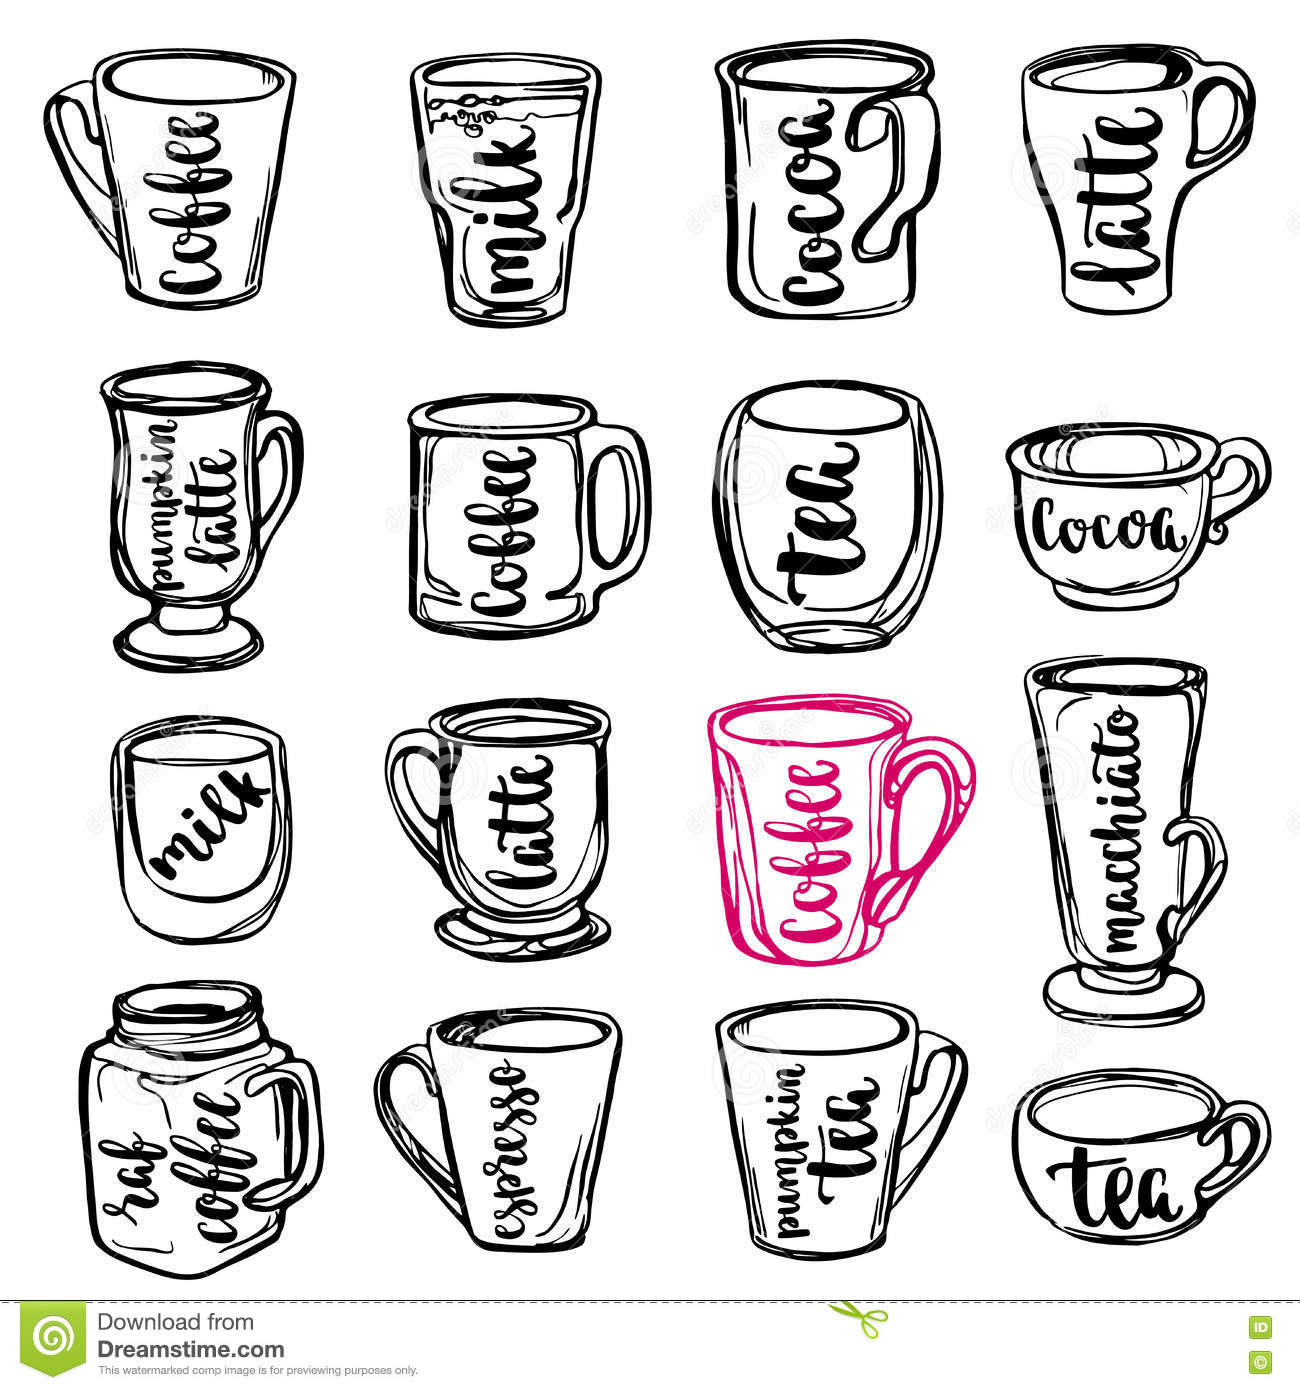 Beverages Calligraphy And Lettering On Line Art Cups Vector Illustration Of Cups Mugs And Glasses Stock Vector Illustration Of Cafe Chalk 82286167